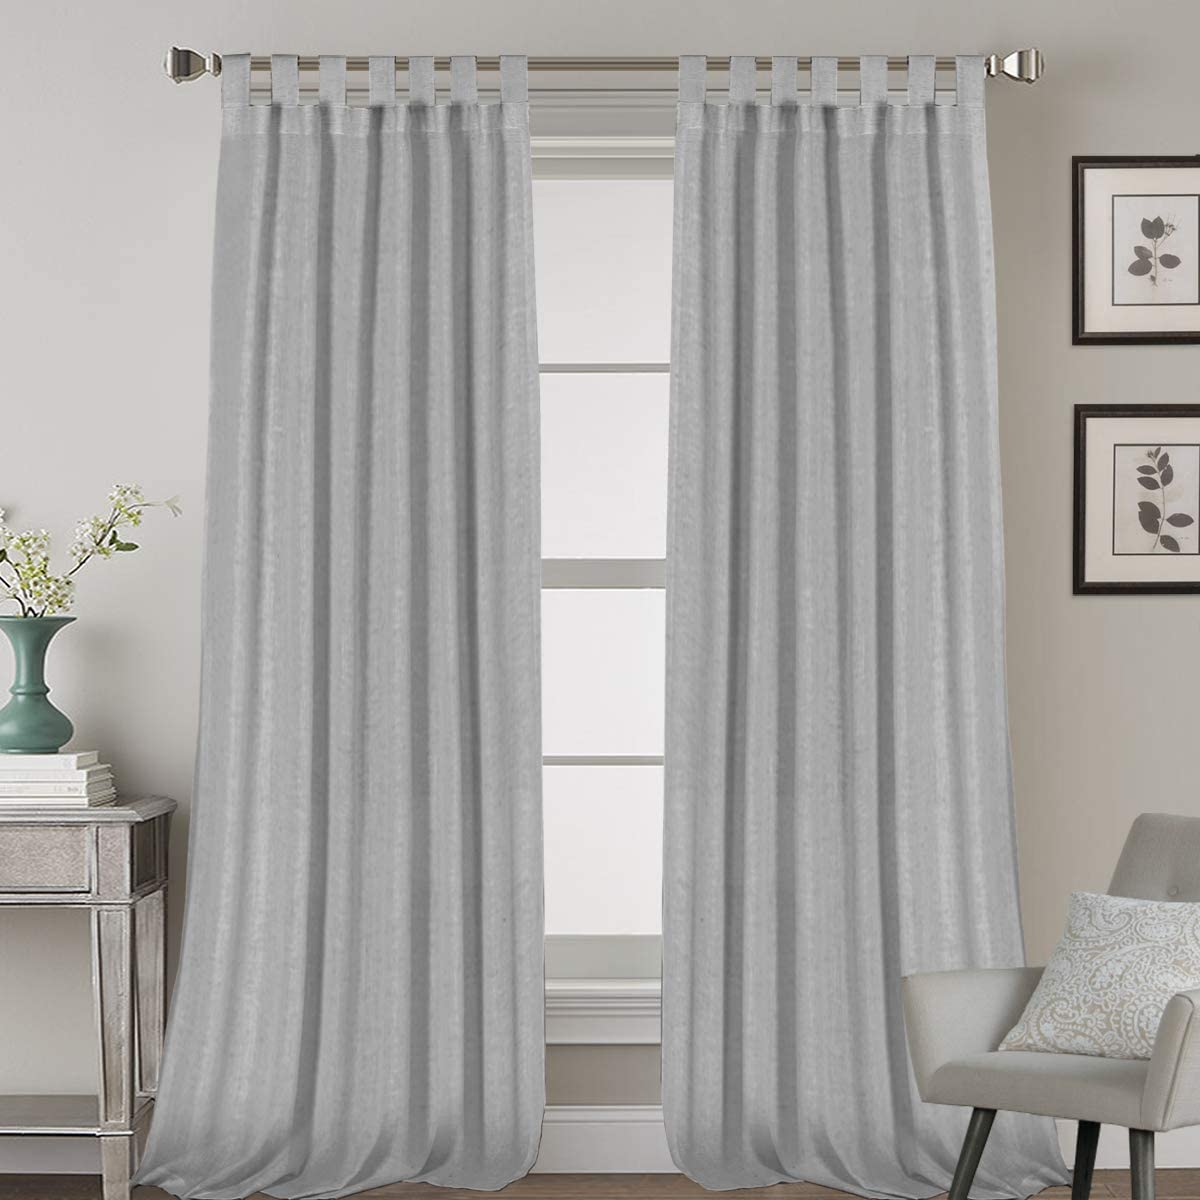 2 Pack Ultra Luxurious High Woven Linen Elegant Curtain Panels Light Reducing Privacy Panels Drapes, Tab Top Curtain Set, Extra Long 52x108-Inch, Dove